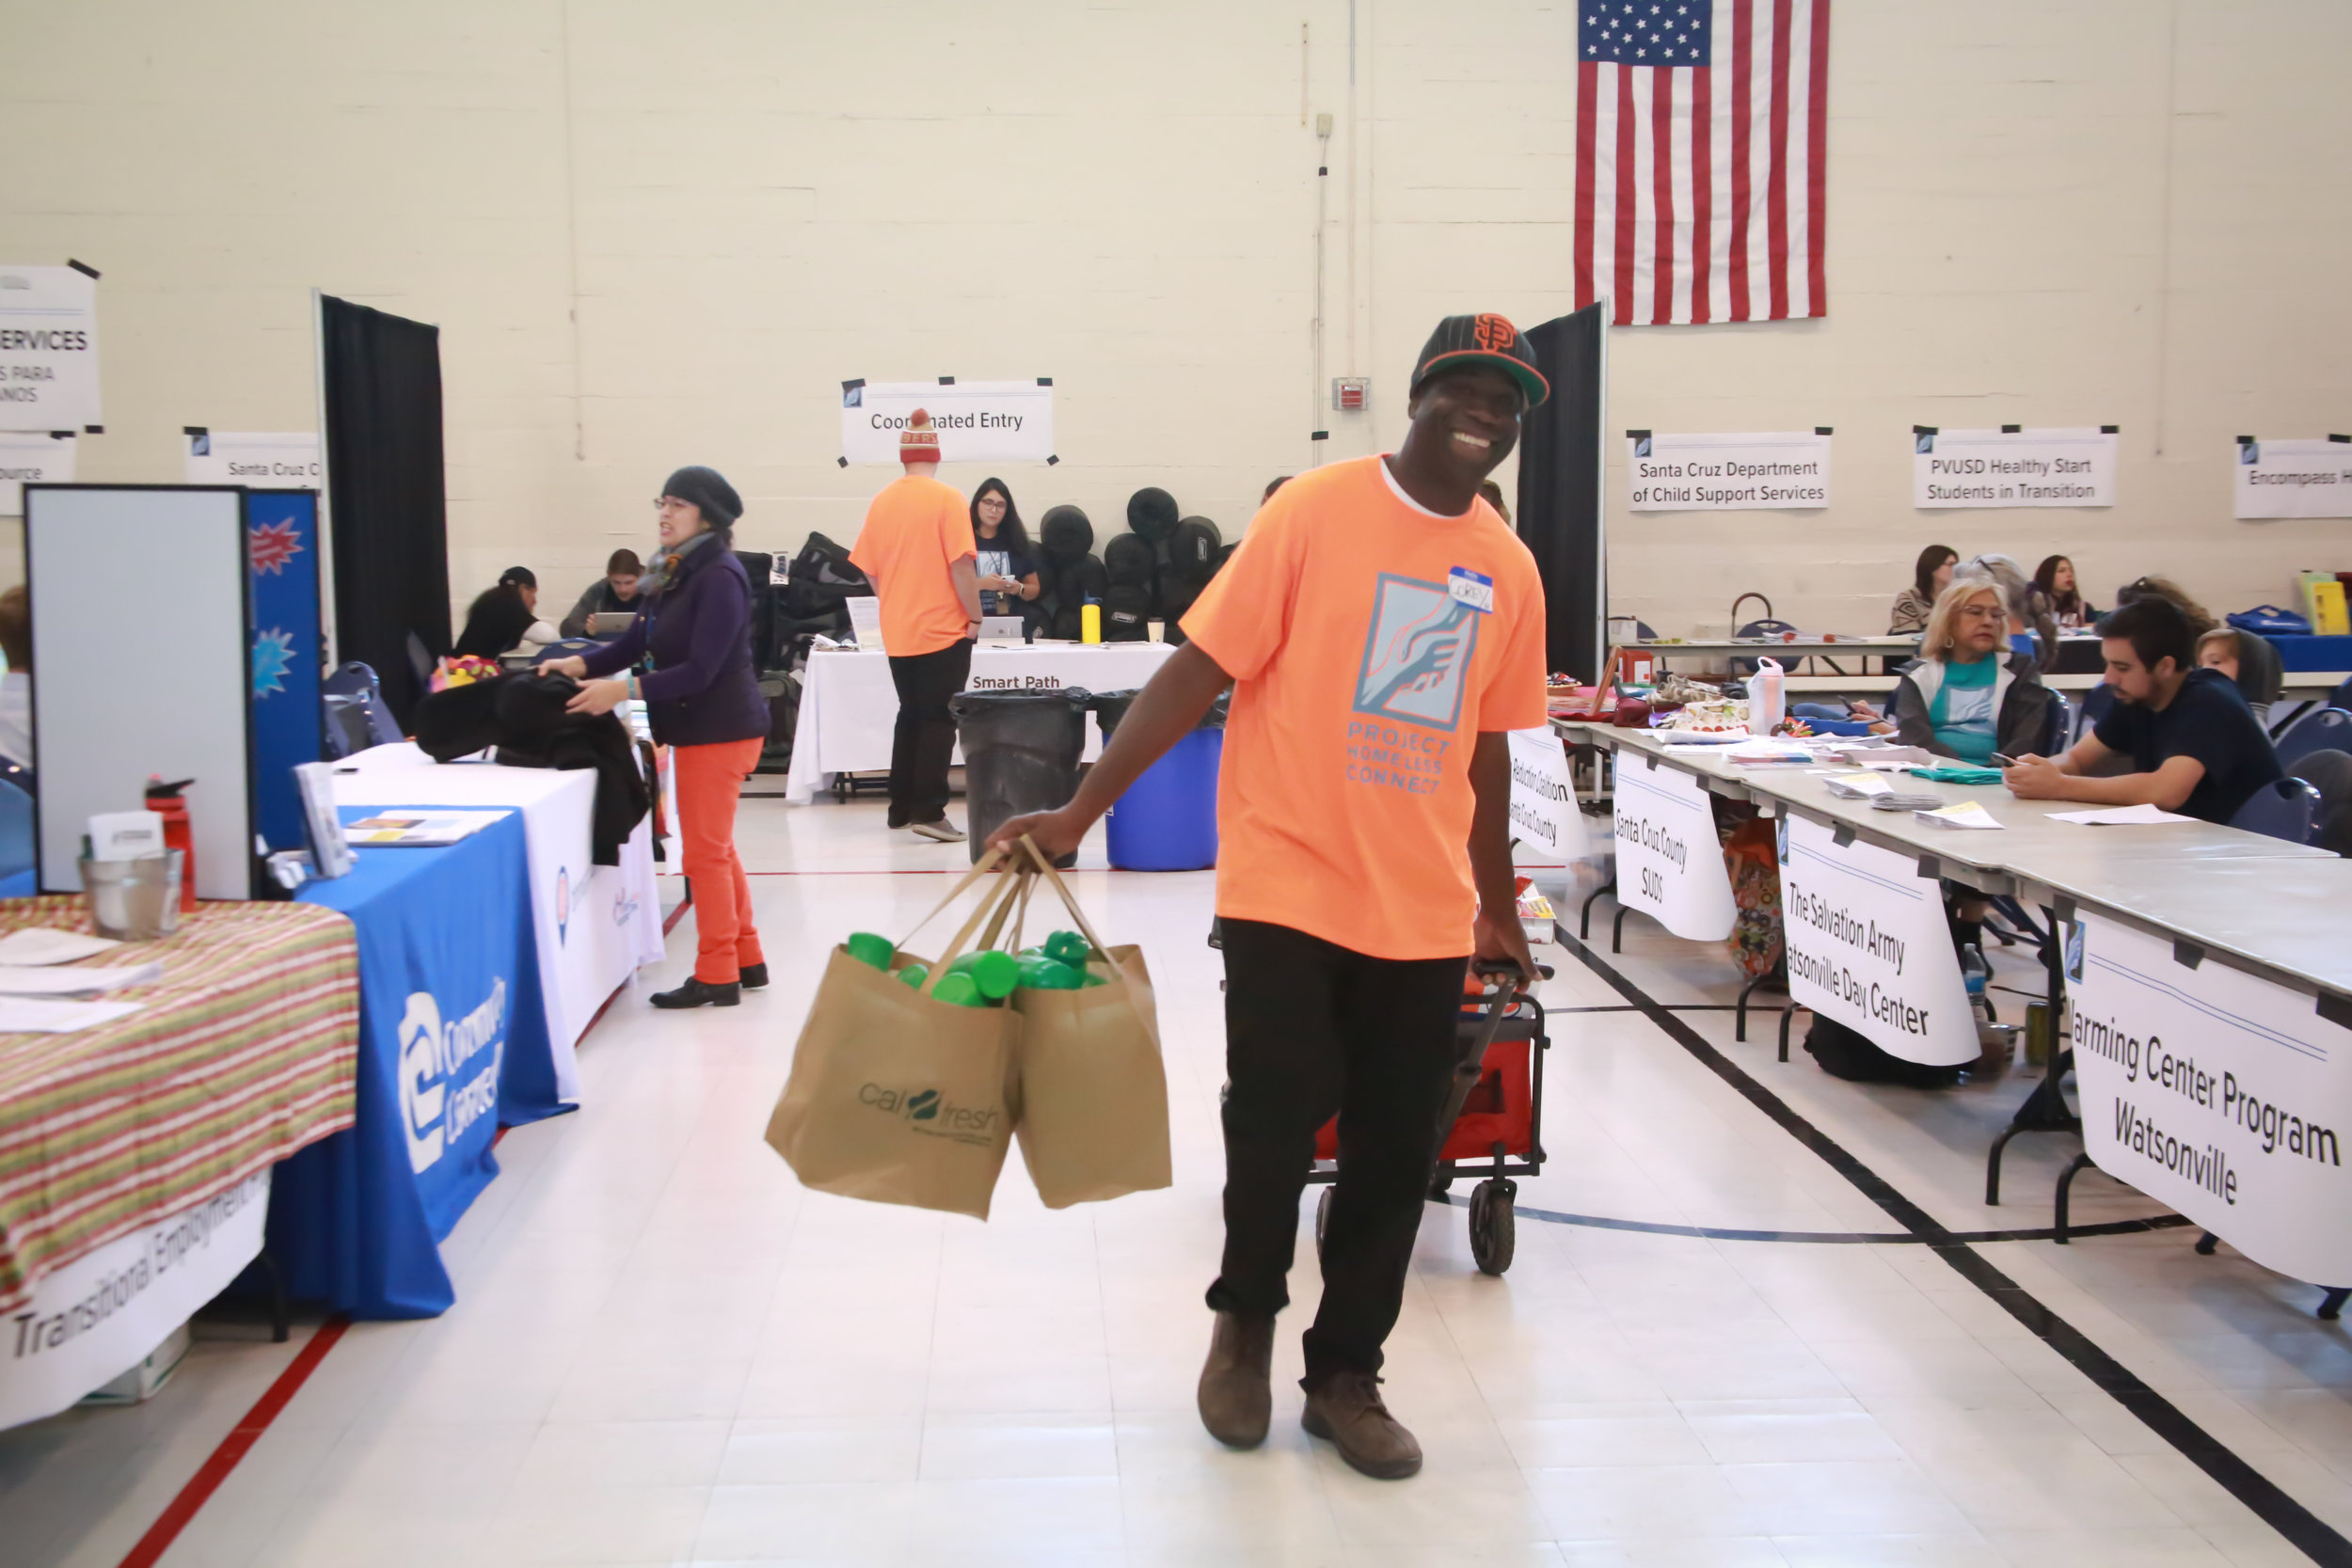 project-homeless-connect-resources-free-food-volunteers-to-help-homeless-3.jpg